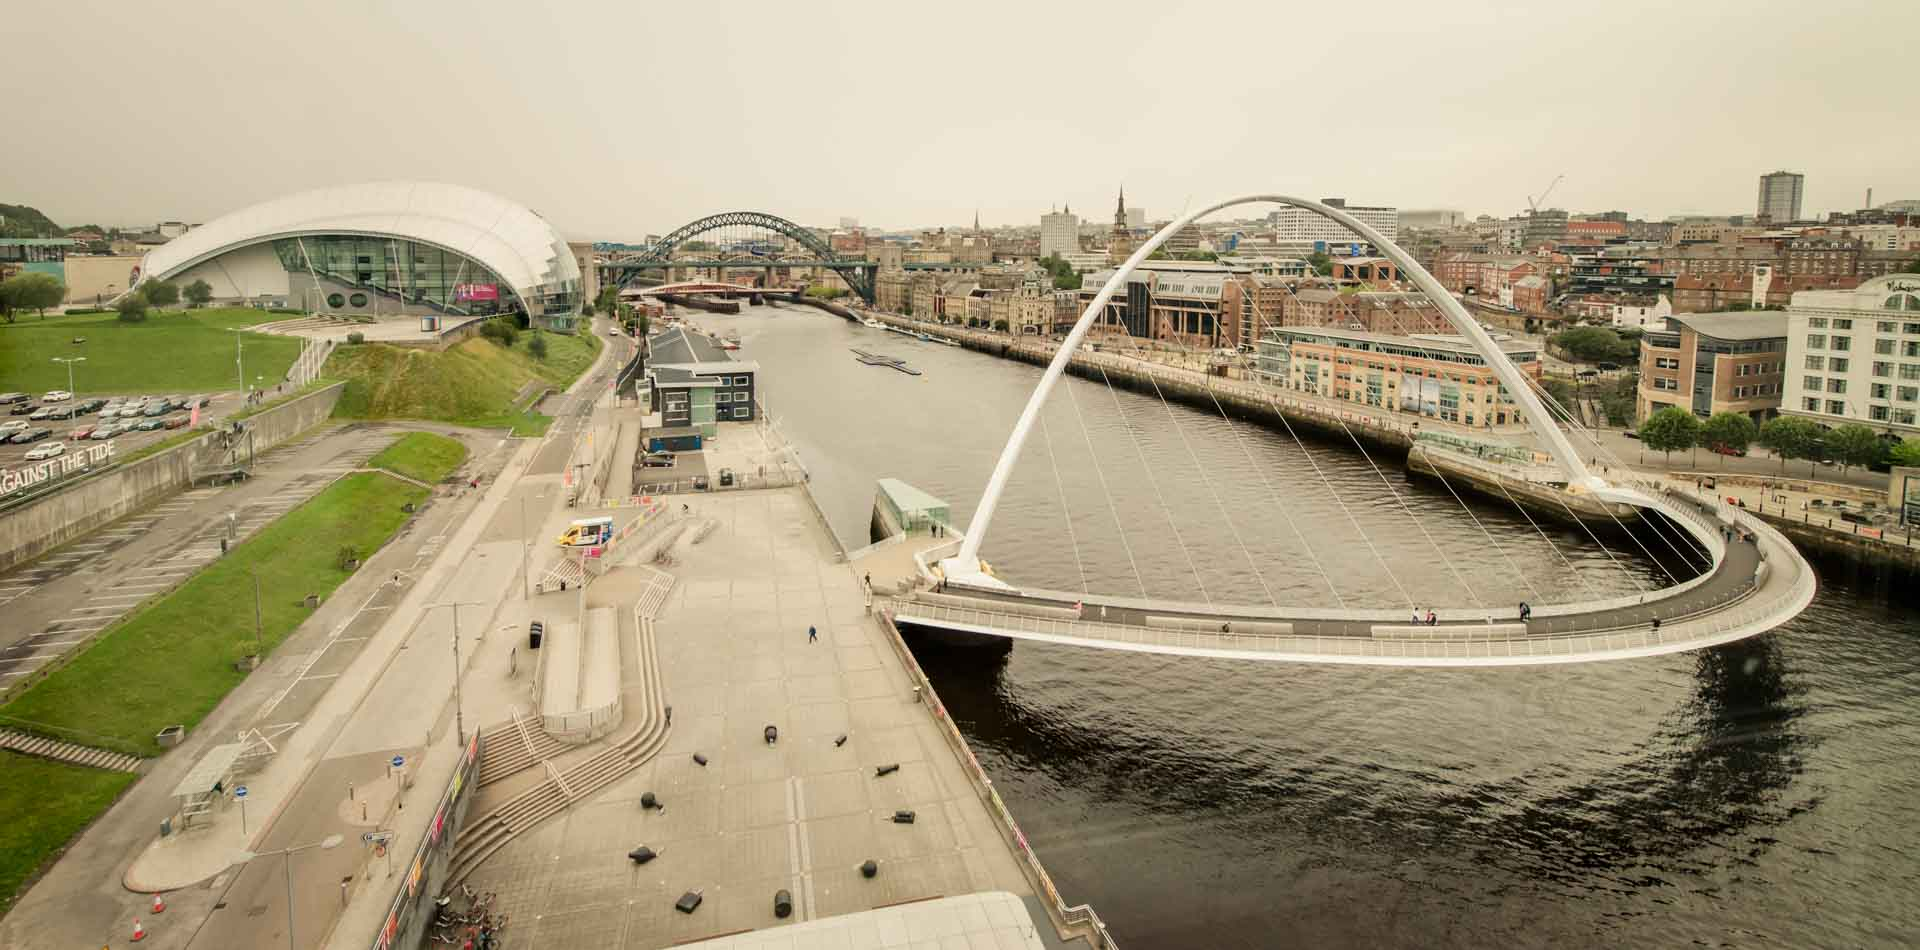 PREMIER SUITES Newcastle Millennium Bridge and Sage Gateshead